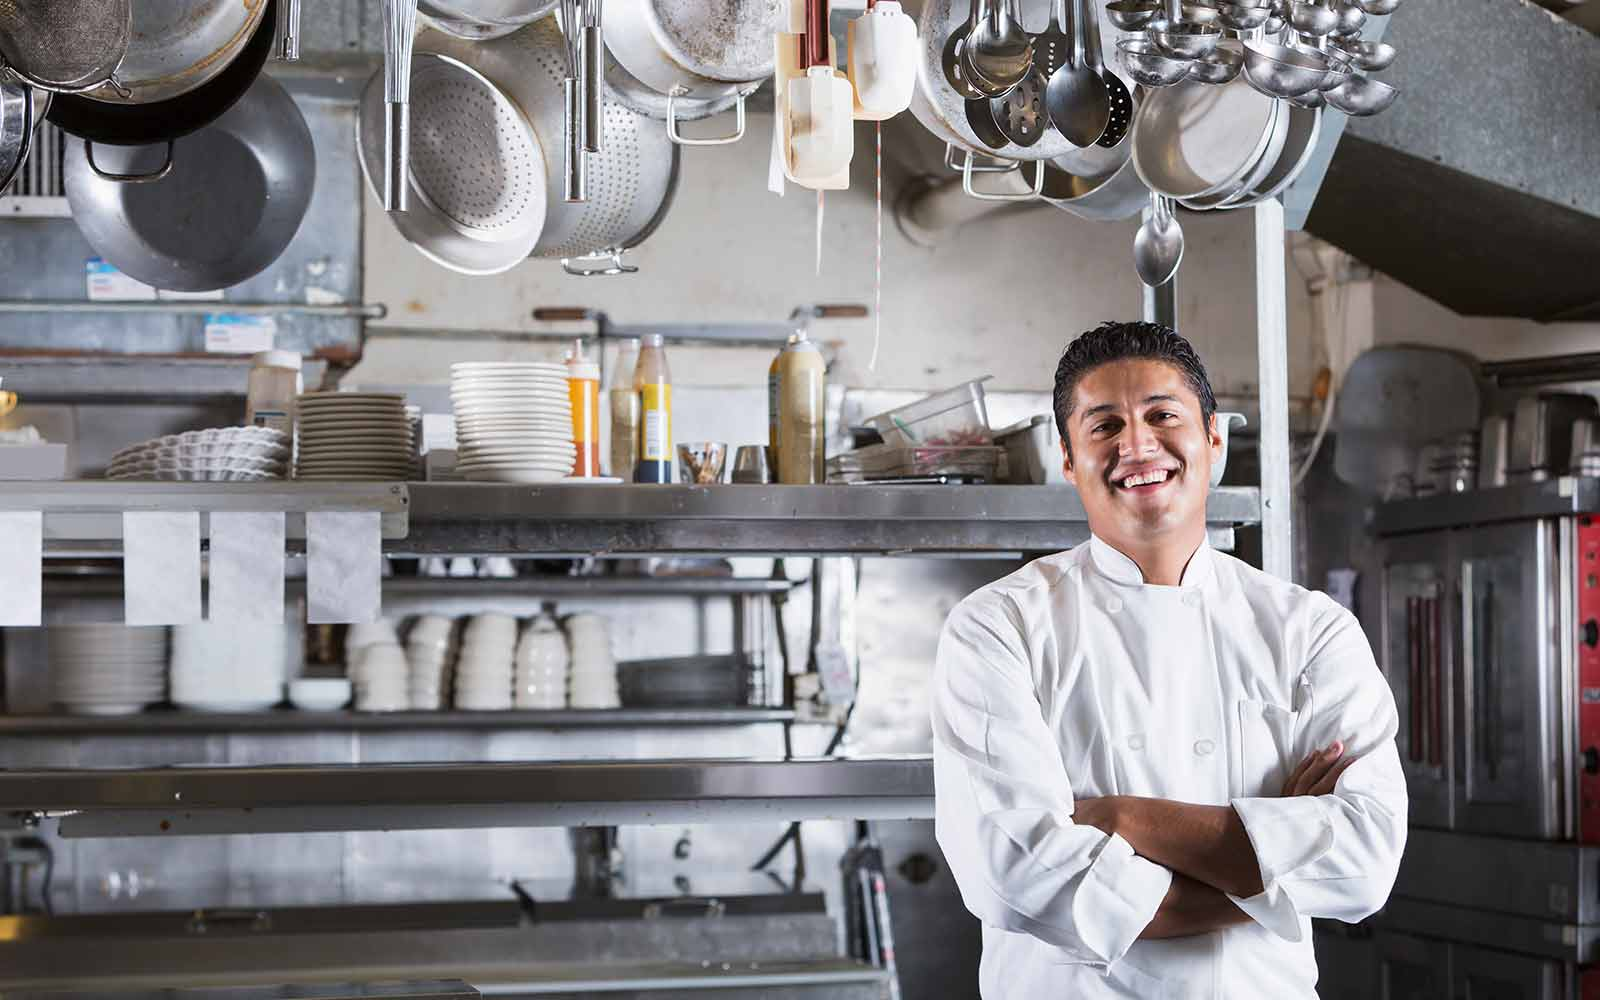 chef who will look into hispanic small business loans